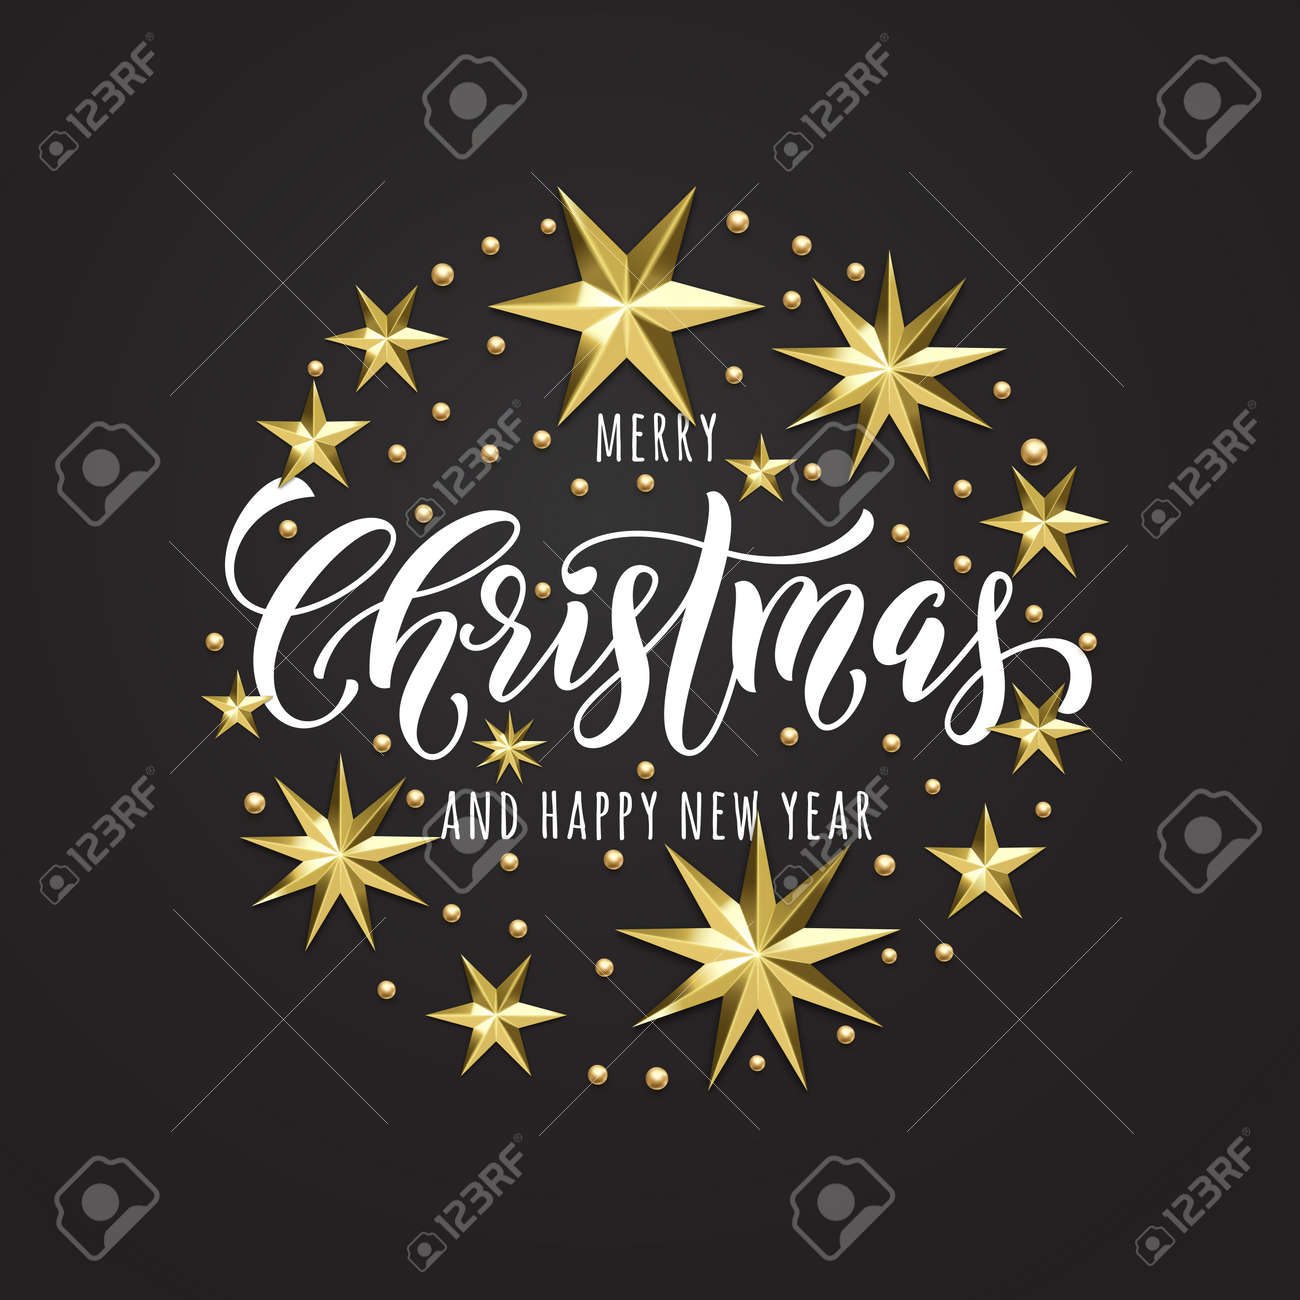 merry christmas or happy new year golden star decoration hand drawn calligraphy font for invitation